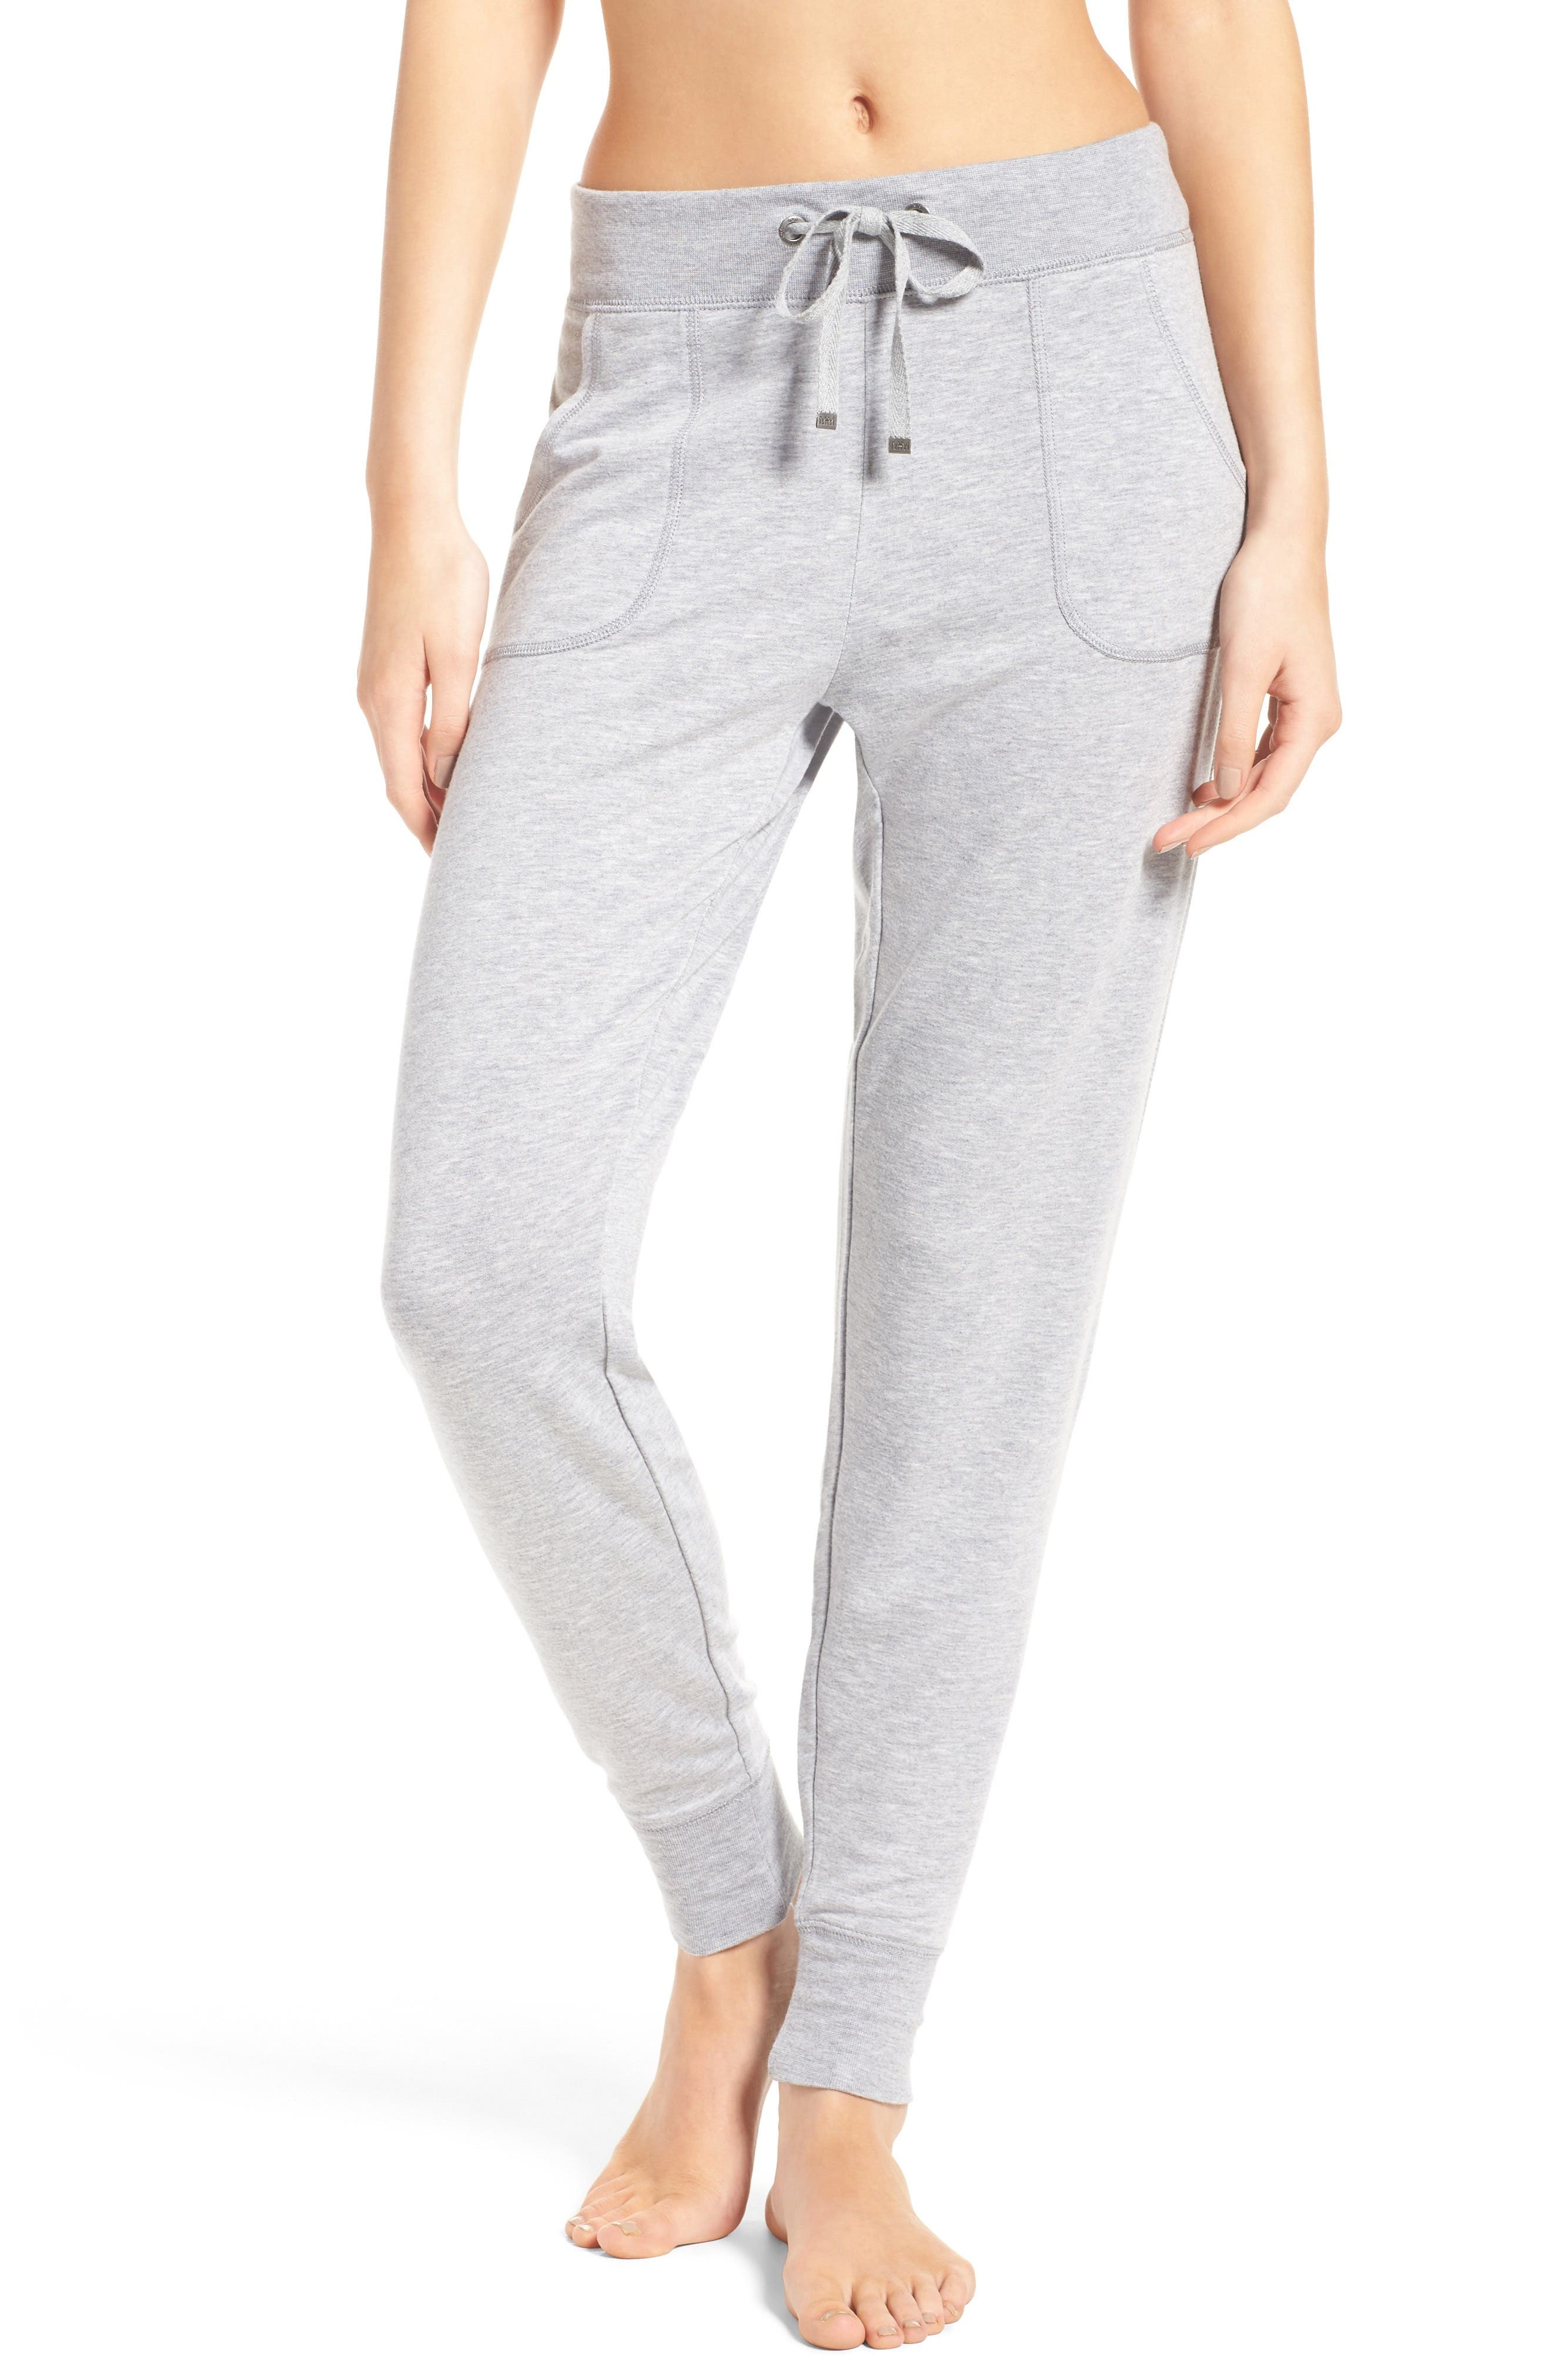 All About It Lounge Pants,                             Main thumbnail 6, color,